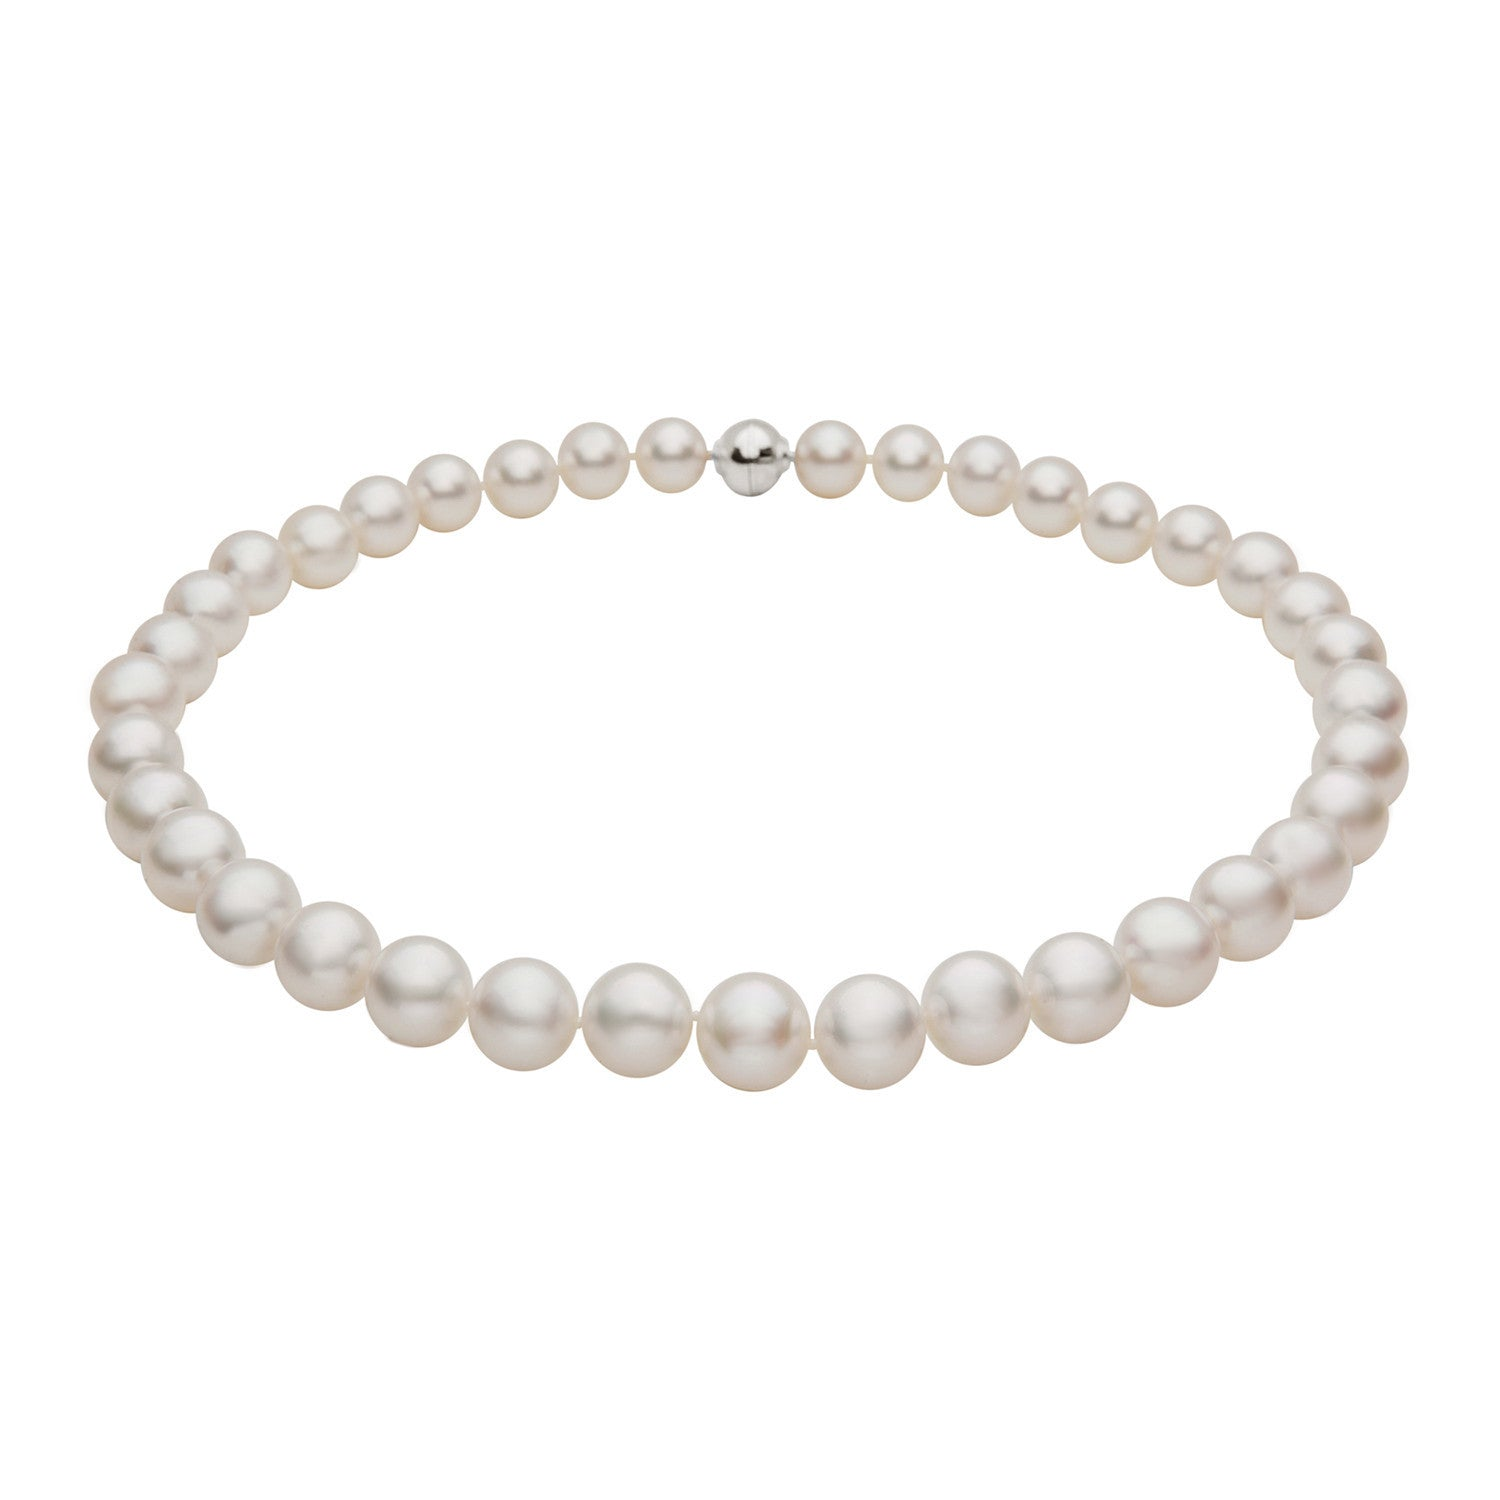 10-11mm White South Sea Pearl Strand